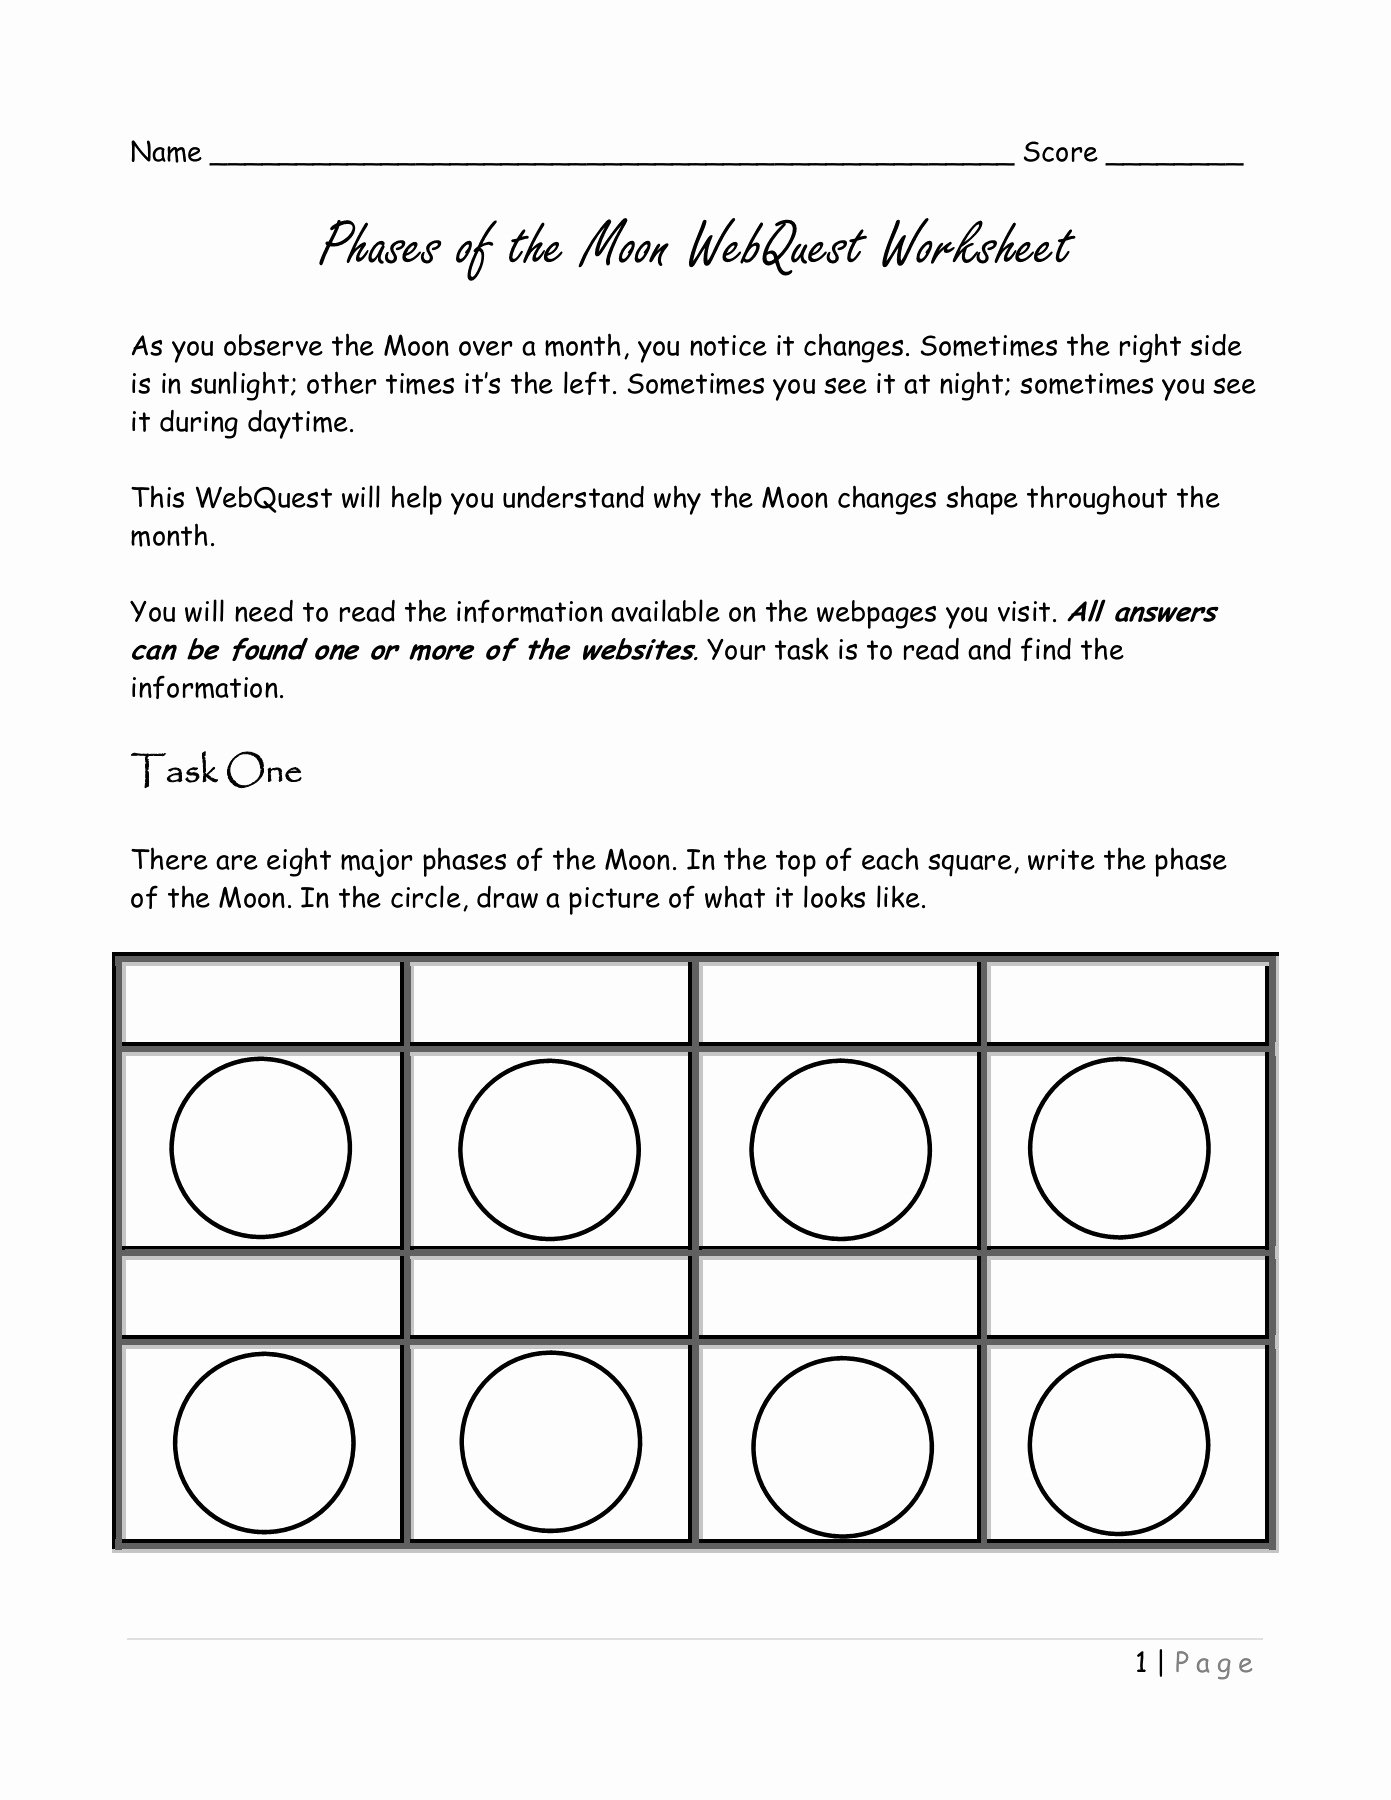 Phases Of the Moon Worksheet Best Of Phases Of the Moon Webquest Worksheet Mrscienceut